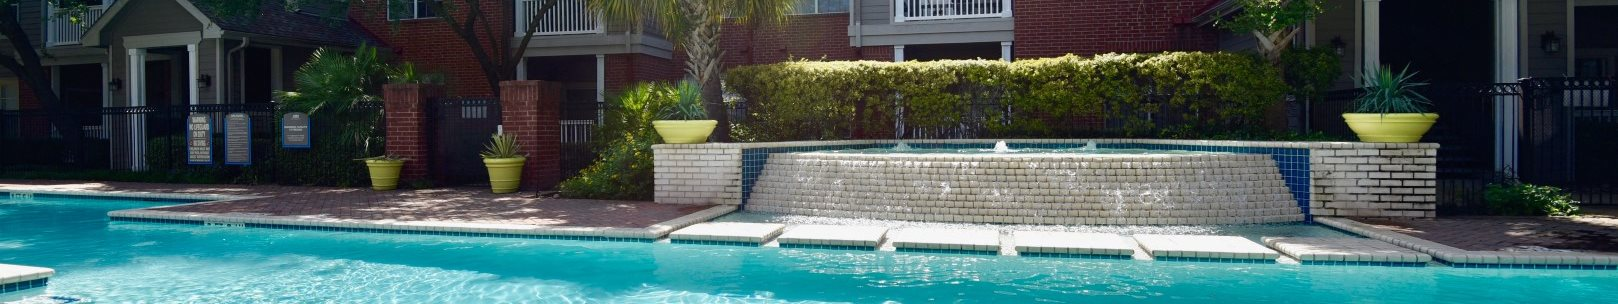 apartments in medical center houston with pool